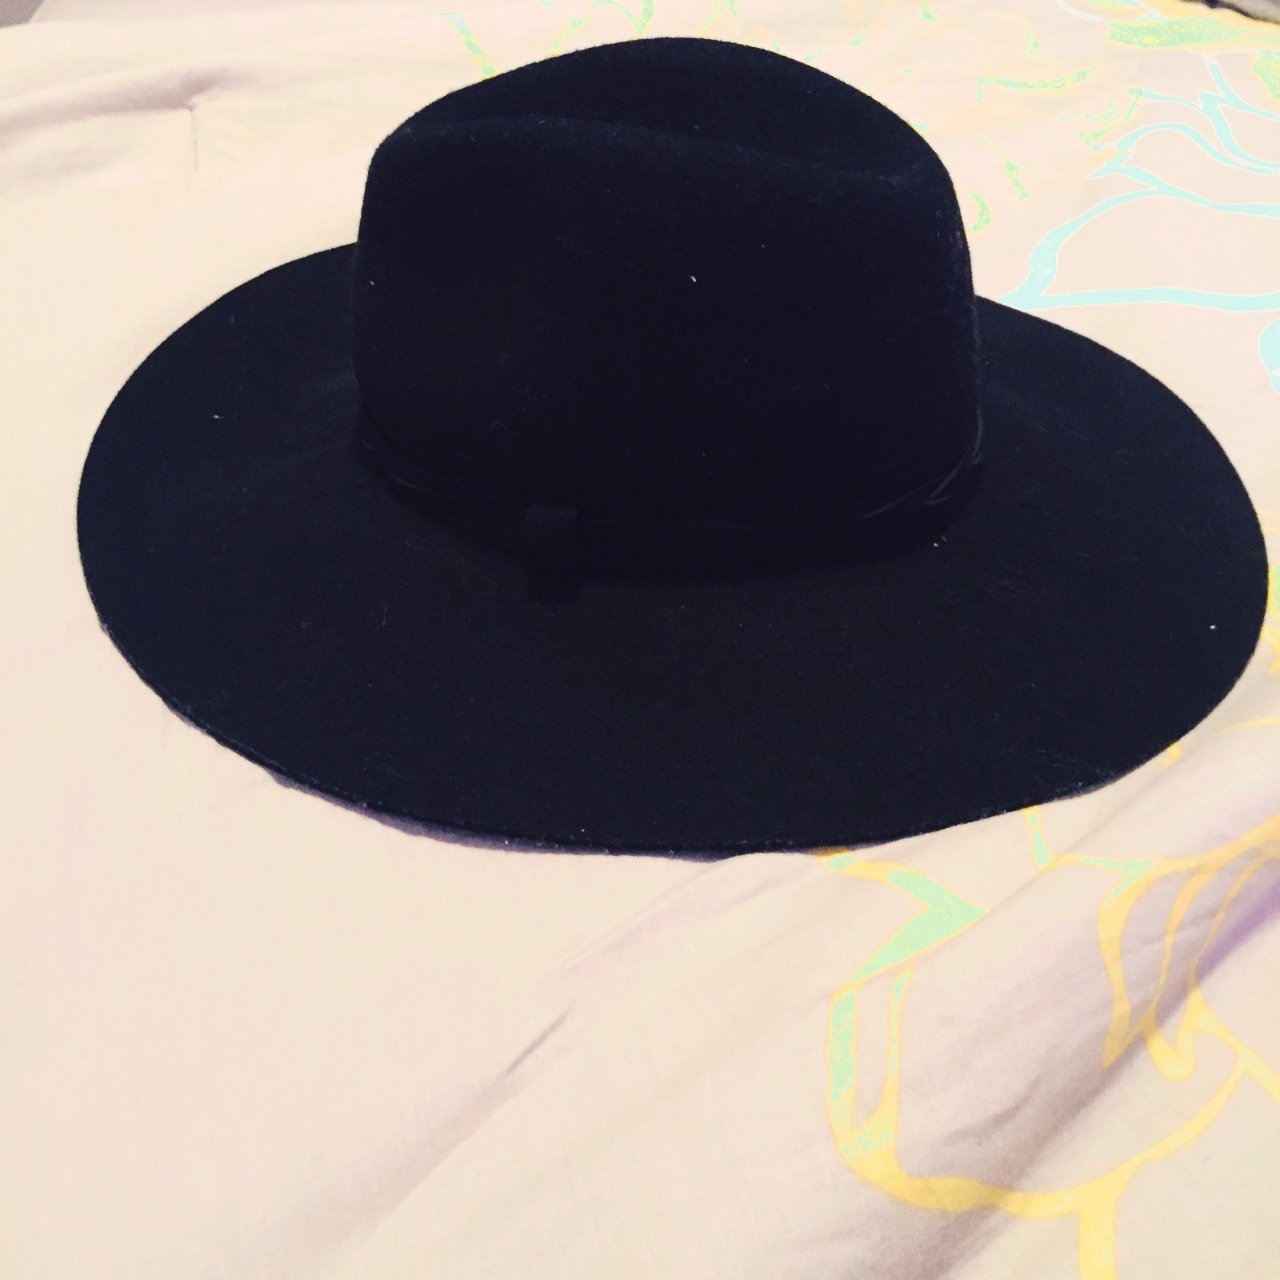 Black suede fedora hat from Forever21  f21  forever21 - Depop 99244c6292e